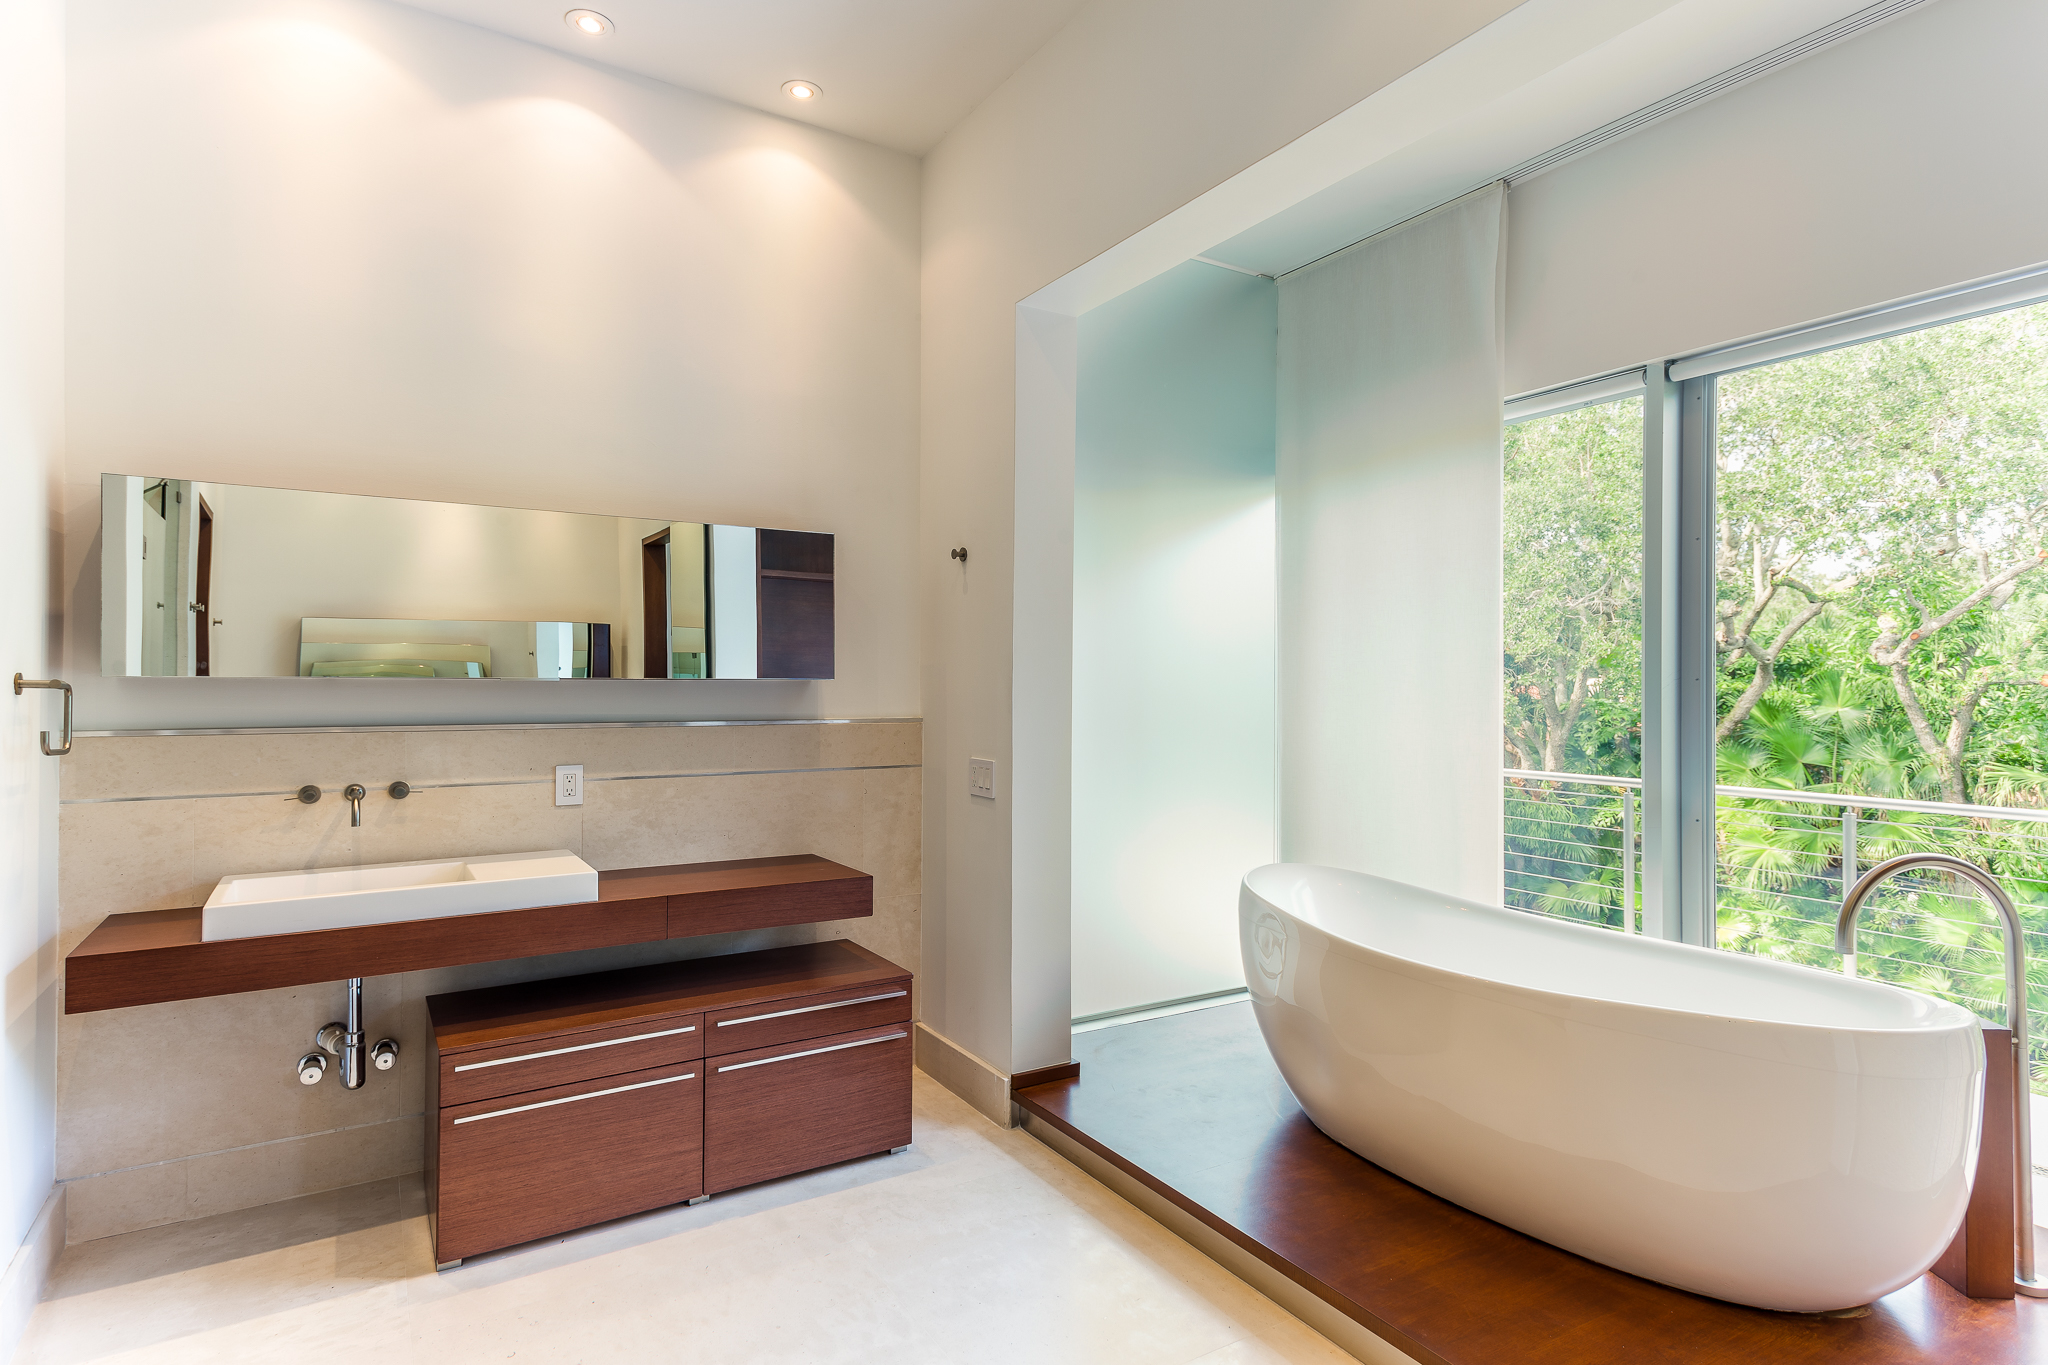 brett miami south plumbing before bathroom remodeling coral gables